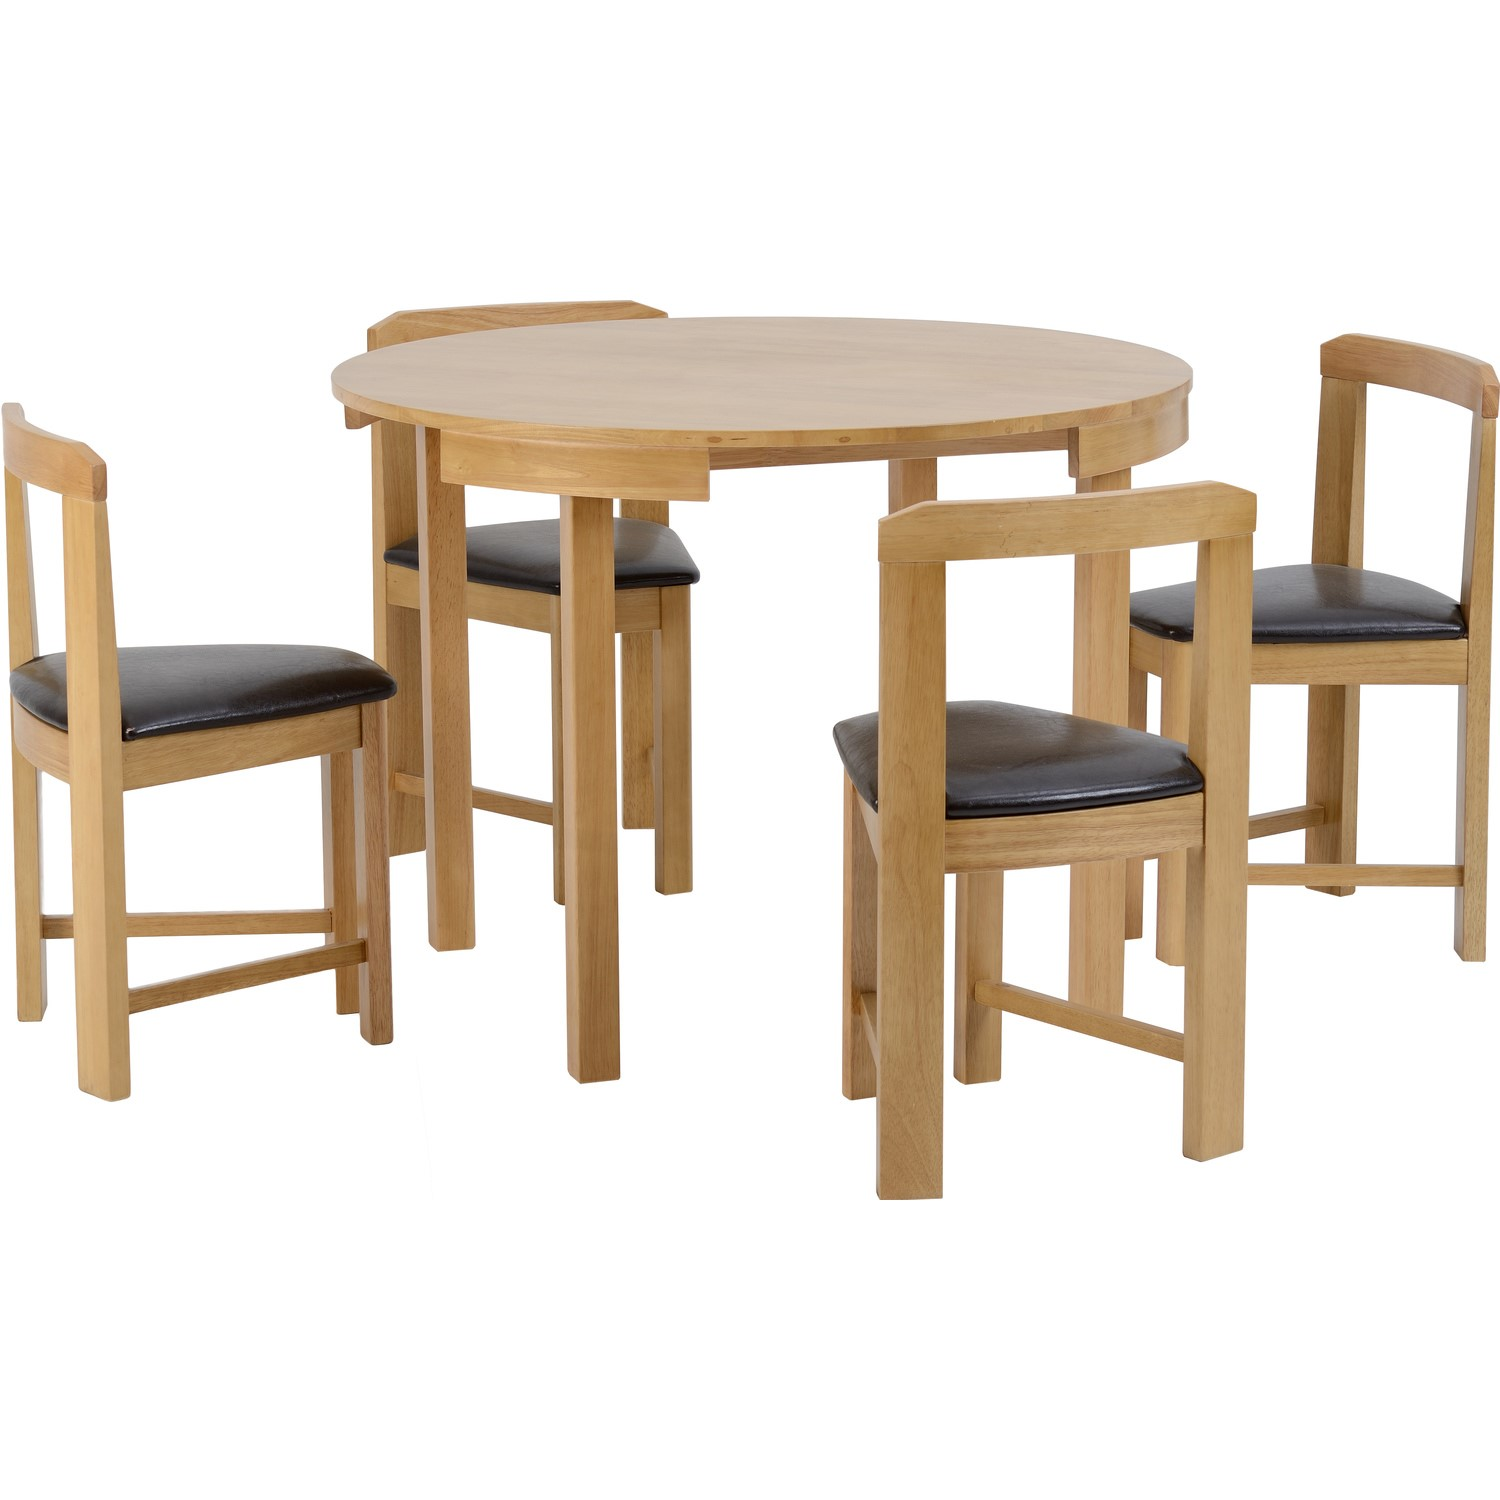 Amazing Seconique Windsor Stowaway Dining Set In Oak With Brown Faux Leather Chairs Home Interior And Landscaping Ologienasavecom